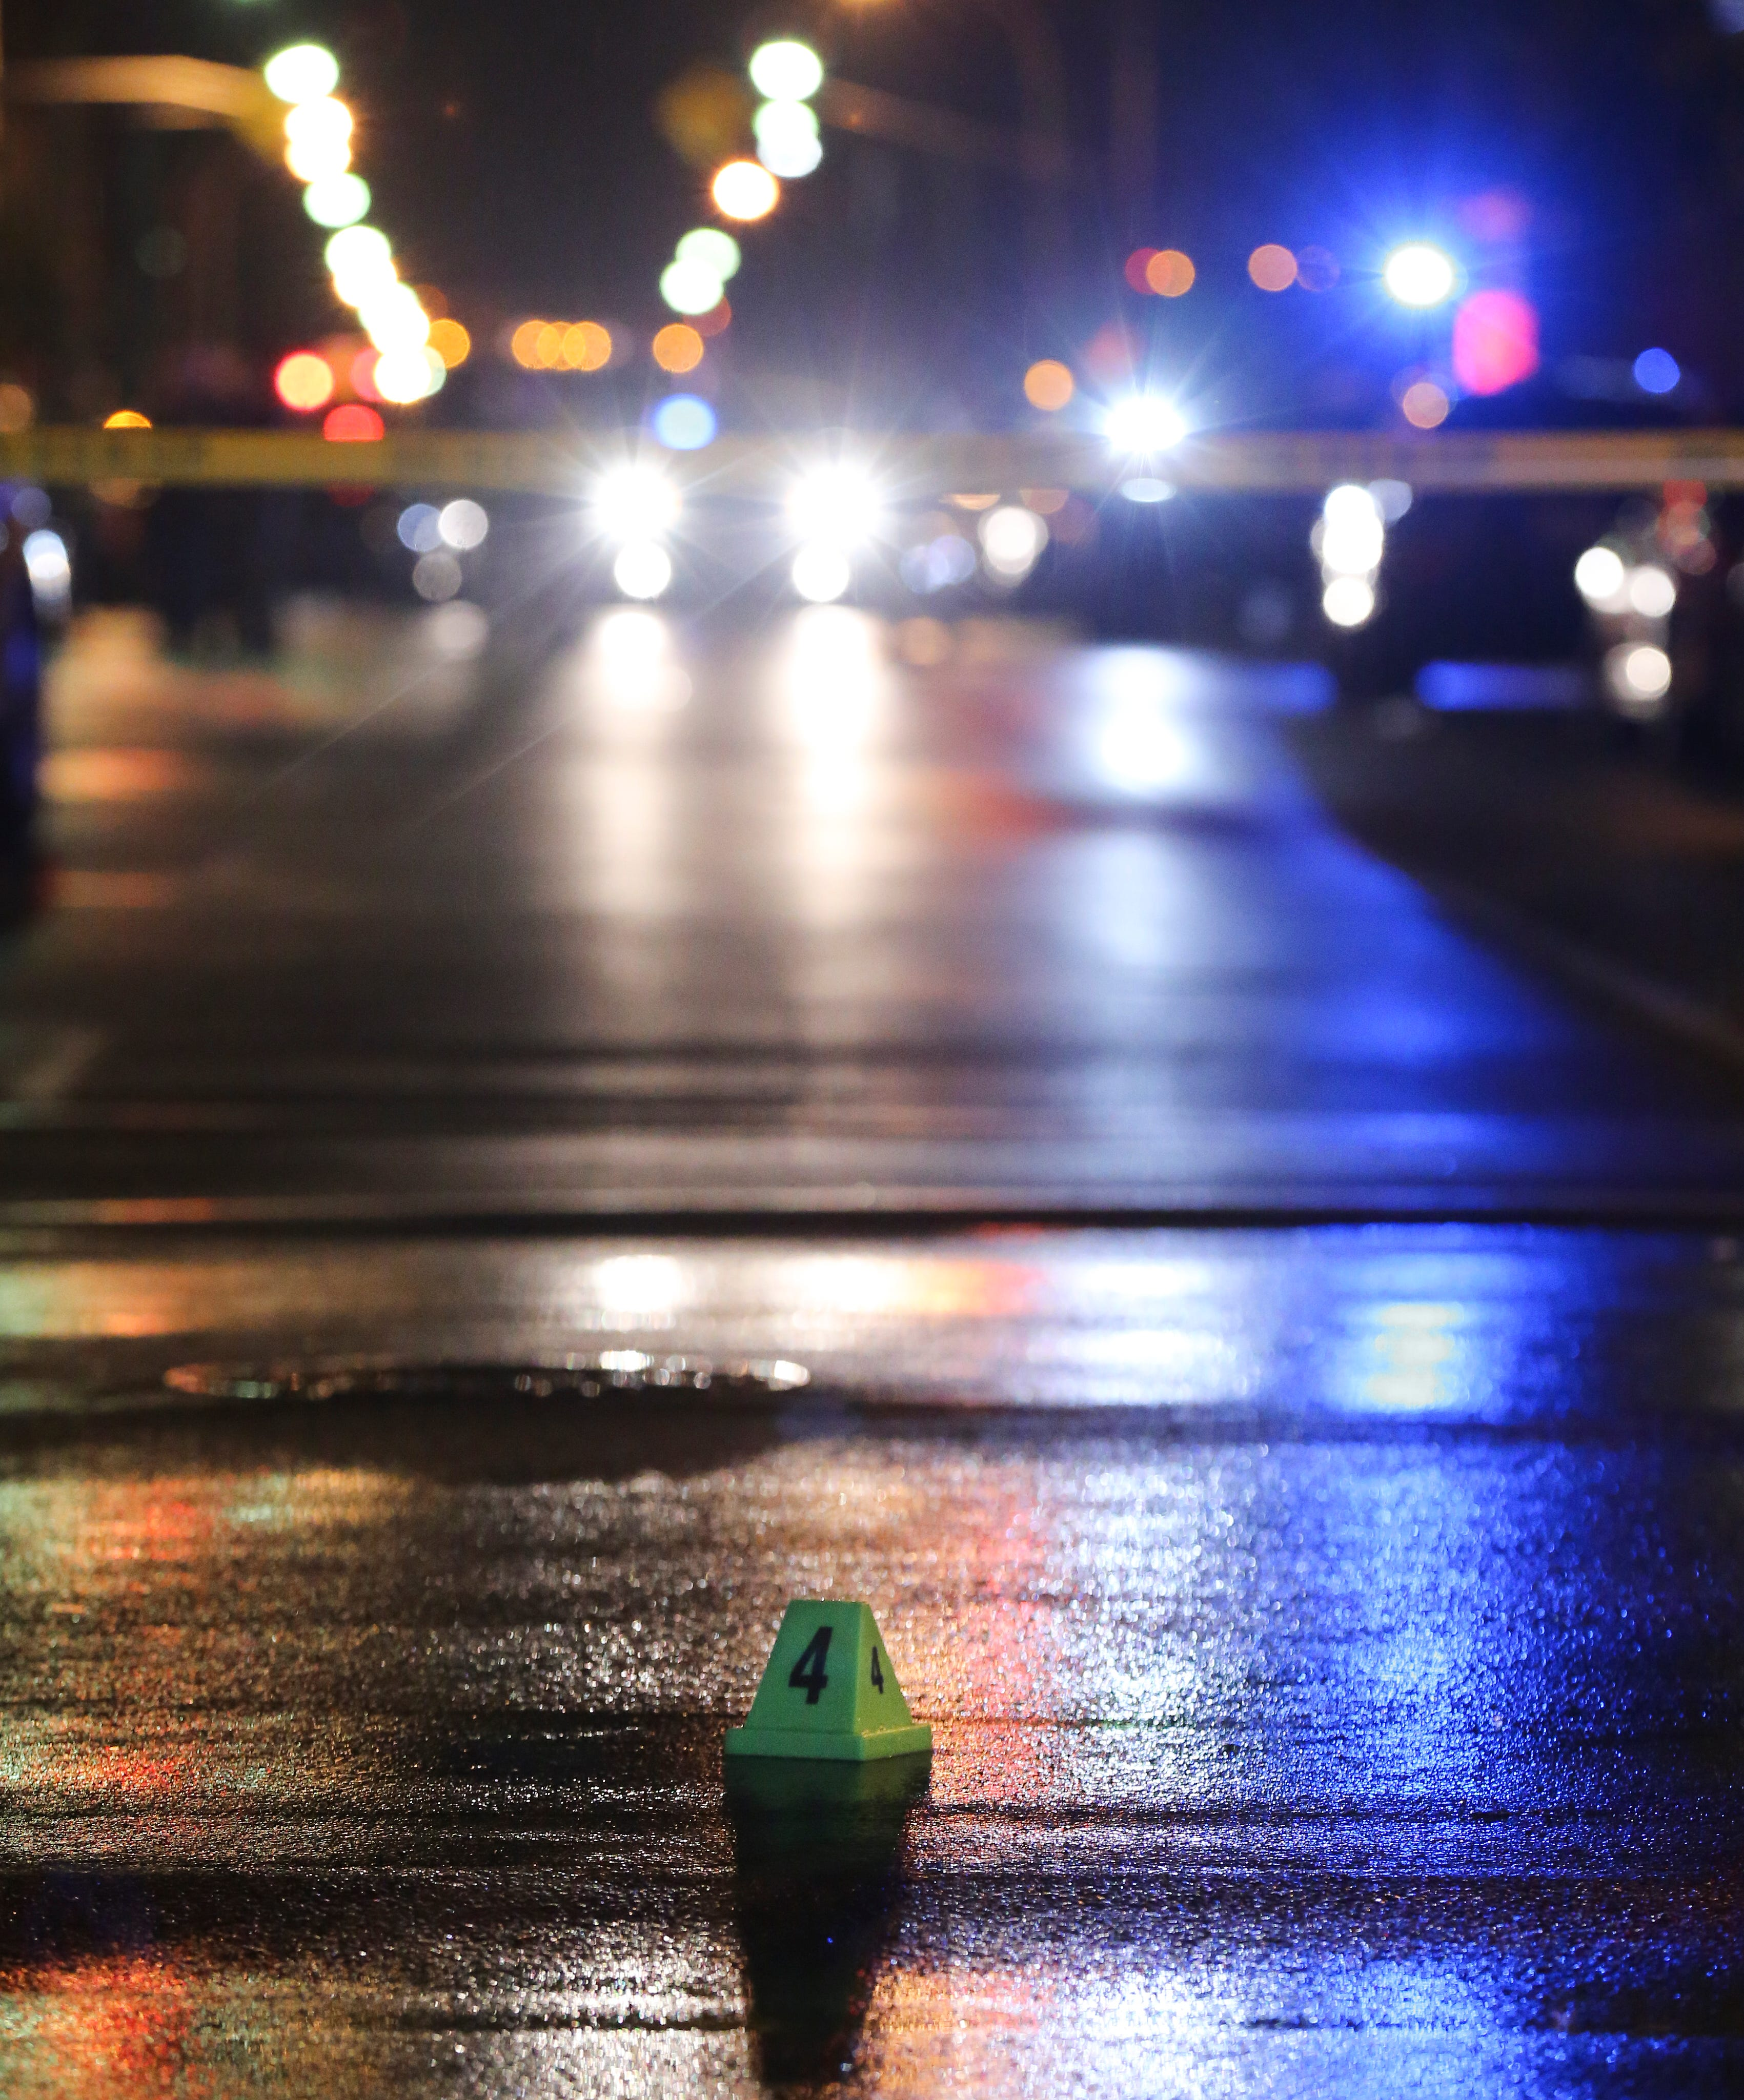 What we know about Saturday s fatal shooting at the downtown Louisville protest